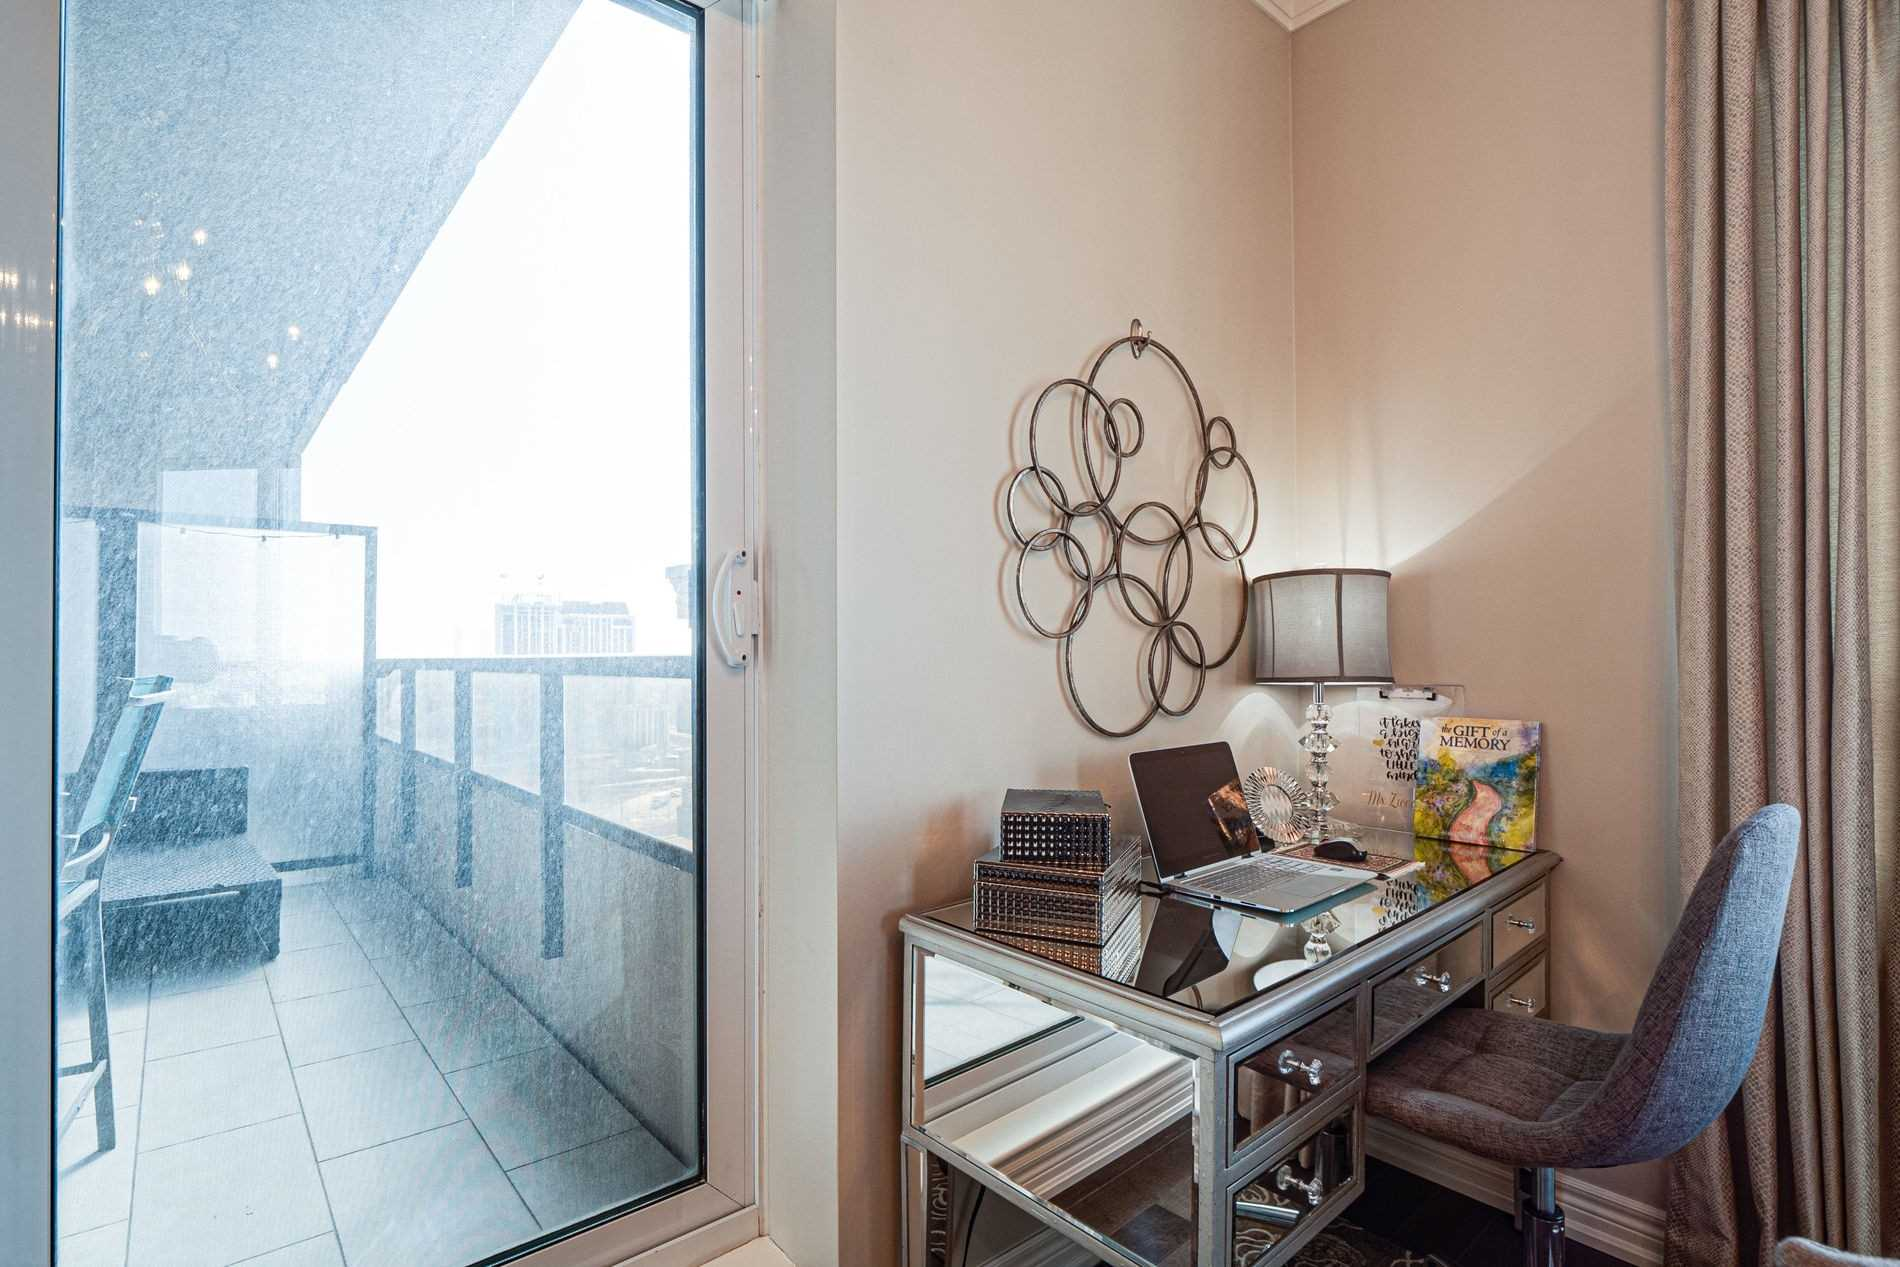 Image 11 of 40 showing inside of 2 Bedroom Condo Apt Apartment for Sale at 9255 Jane St Unit# 1702, Vaughan L6A0K1